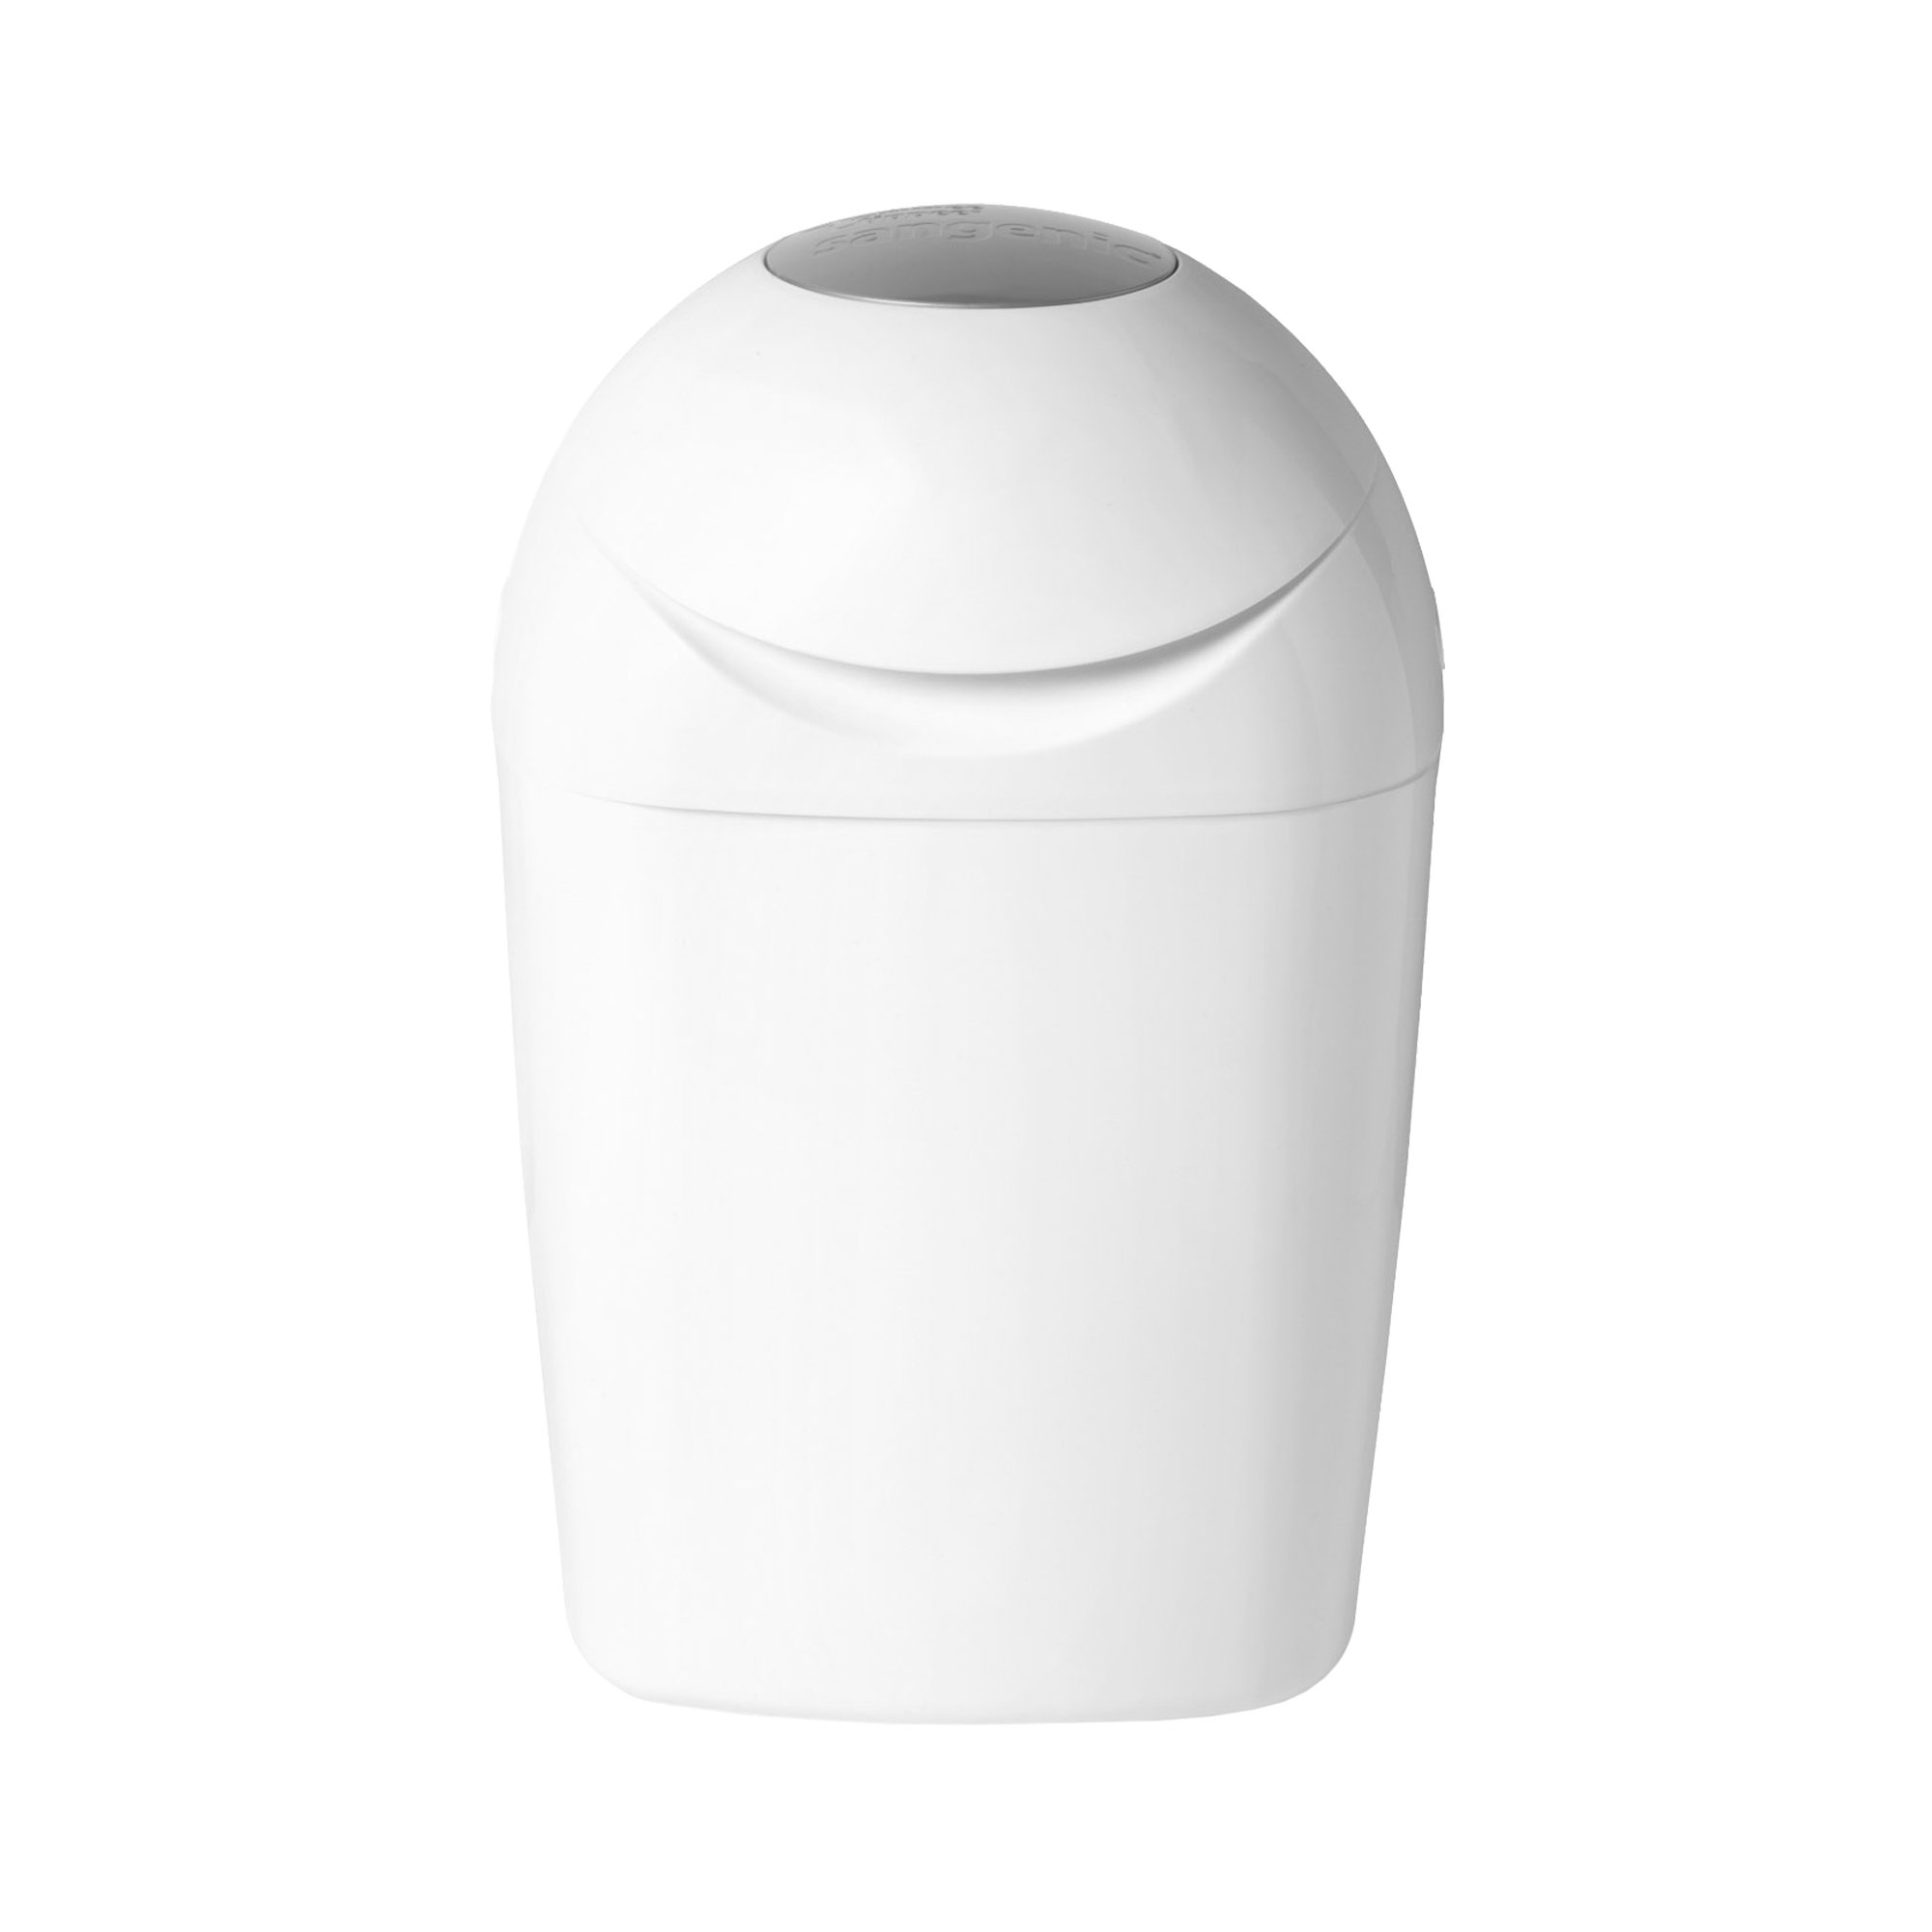 Amazon.com: Diaper pail refills for the diaper trash can